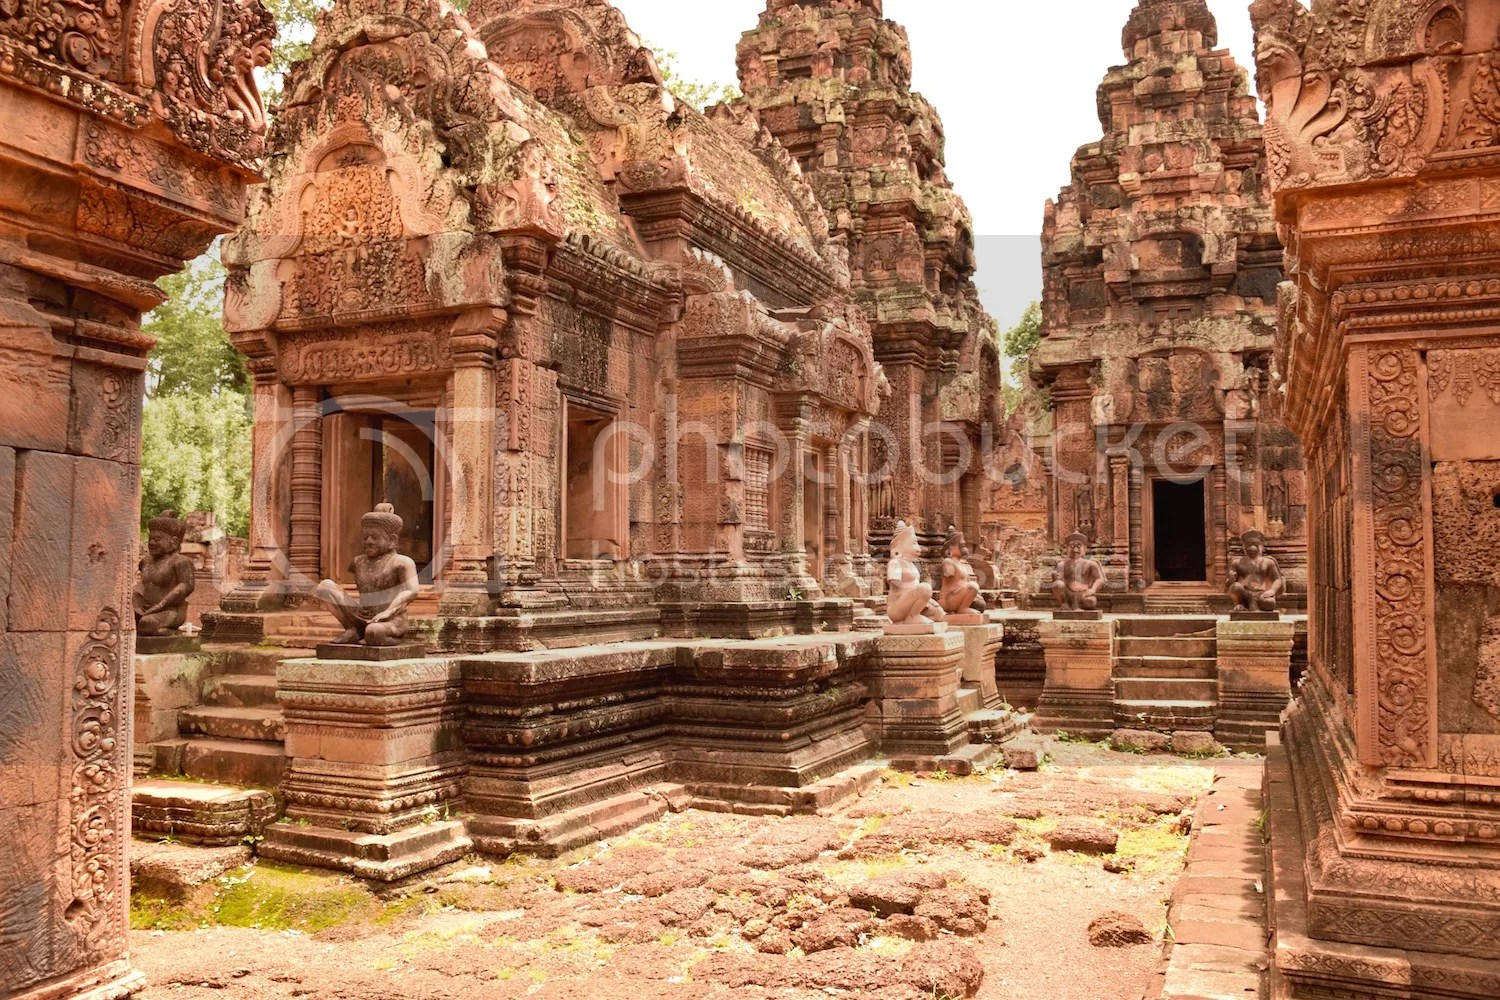 The temple at Banteay Srei was built in 967AD, abandoned some time in the 14th century, then rediscovered in 1914. There's barely a surface without intricate carvings.